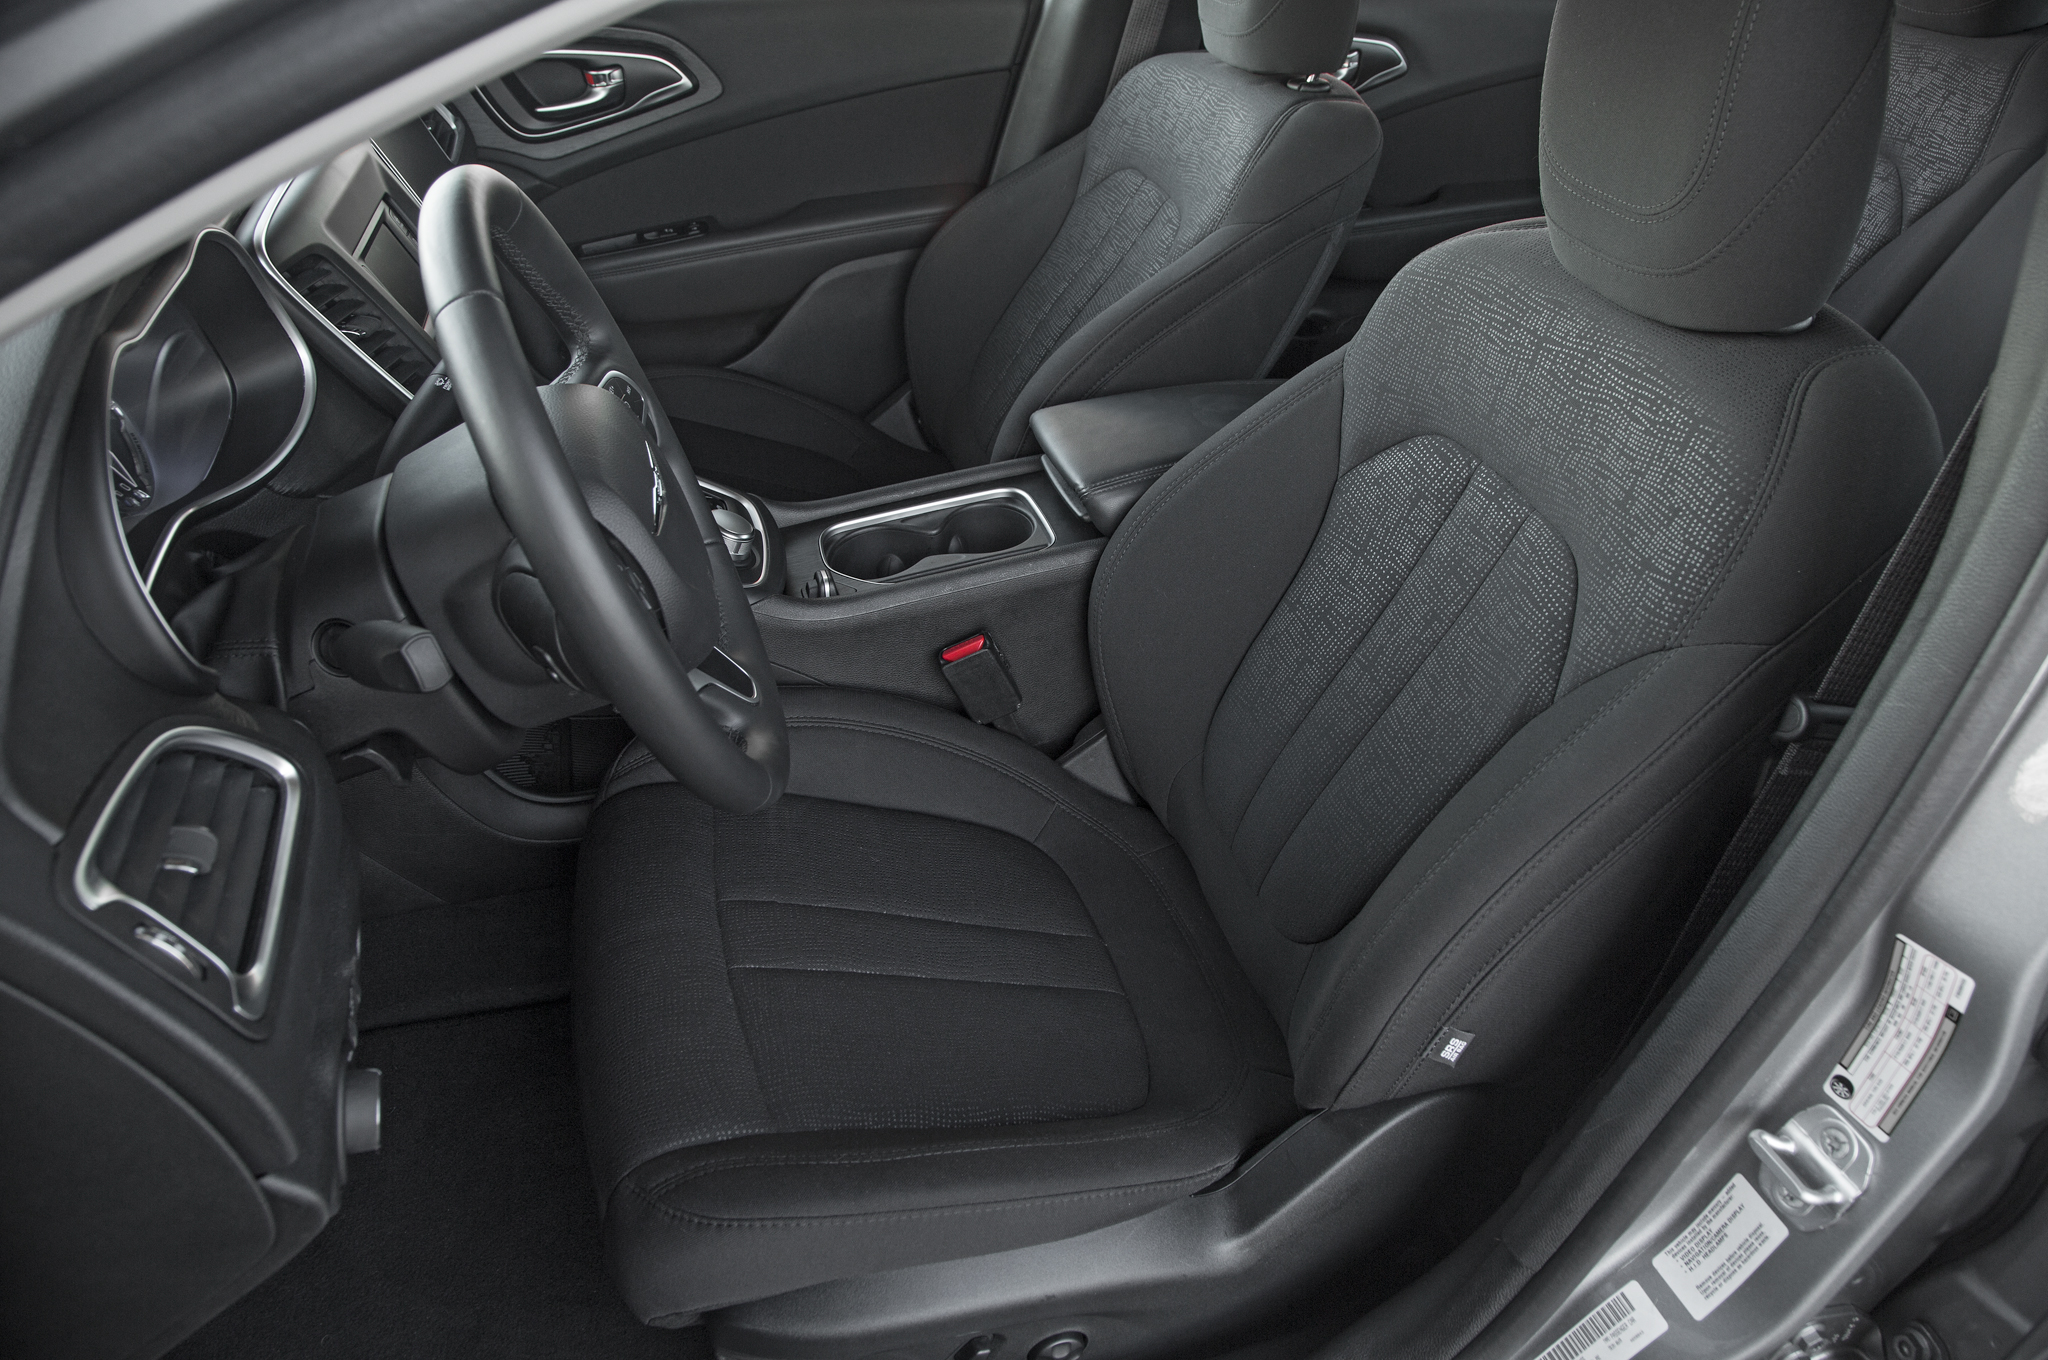 2015 Chrysler 200 Front Interior (Photo 7 of 11)